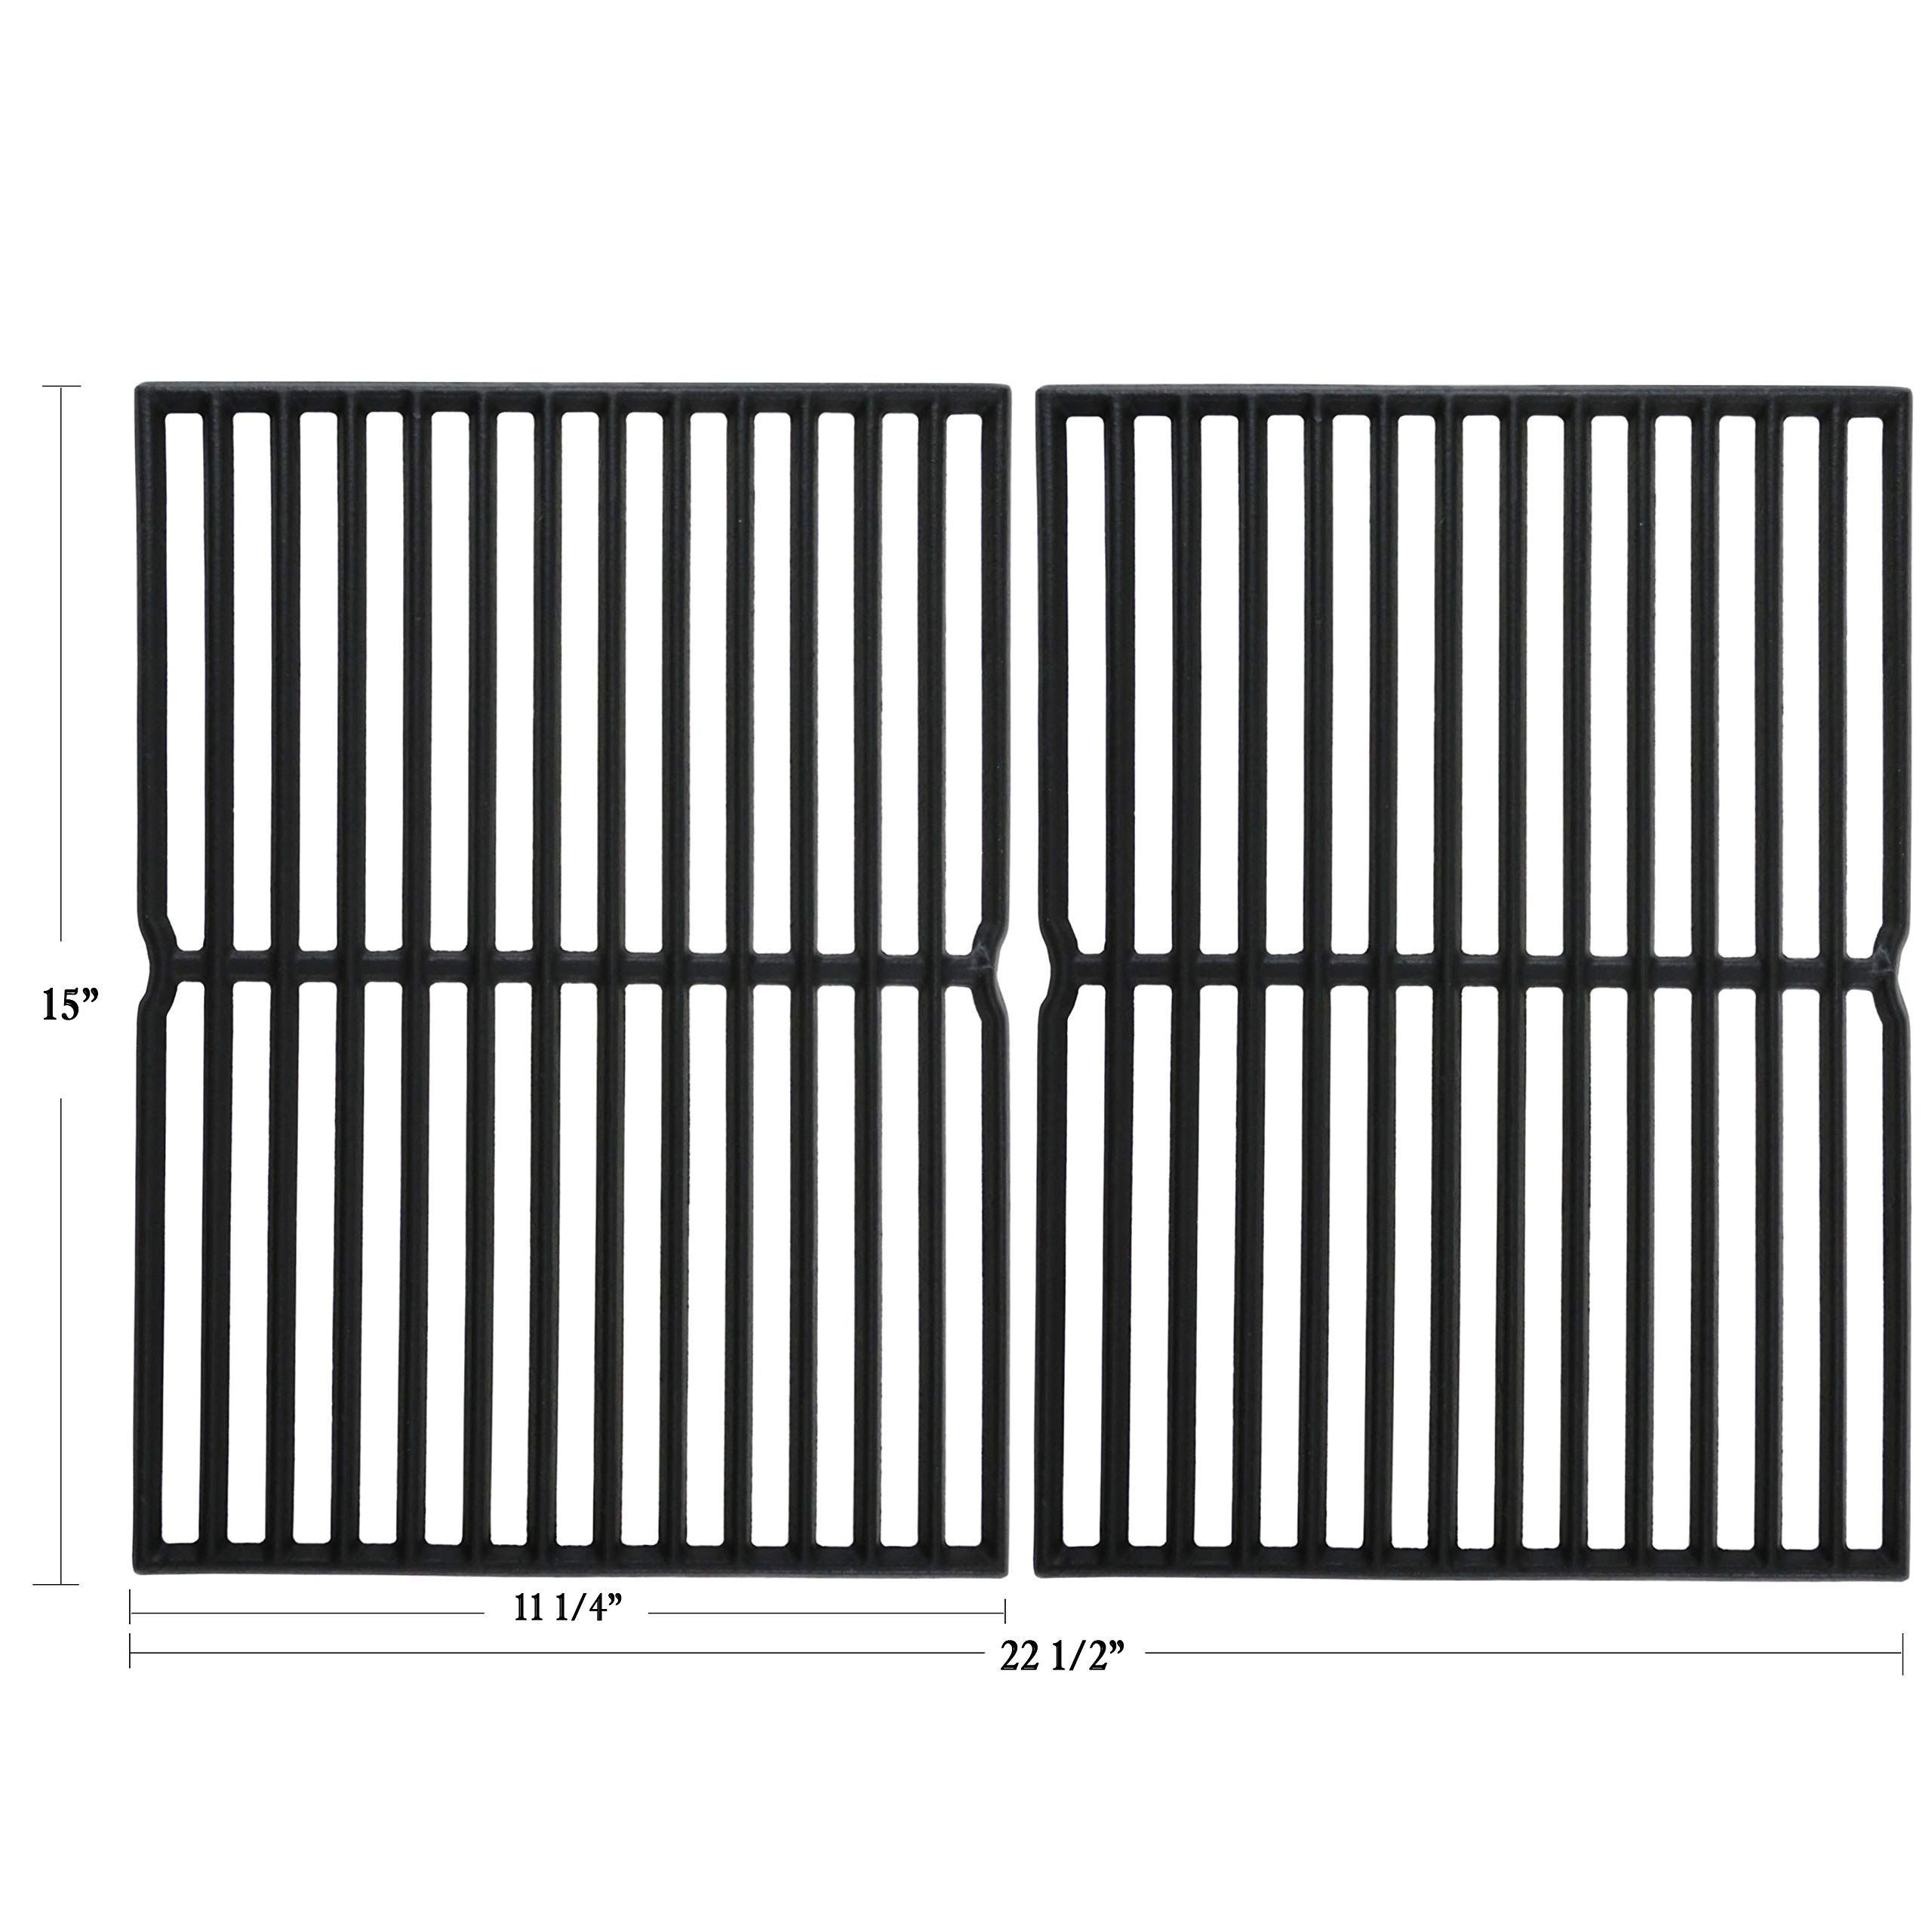 Hisencn Matte Cast Iron Grill Cooking Grids Grates Replacement Parts for Weber Spirit 200 Series, Spirit 500, Genesis Silver A, for Weber 7522, 2271001, 3711001, 4411001, 6711001 Grills, 15 inch